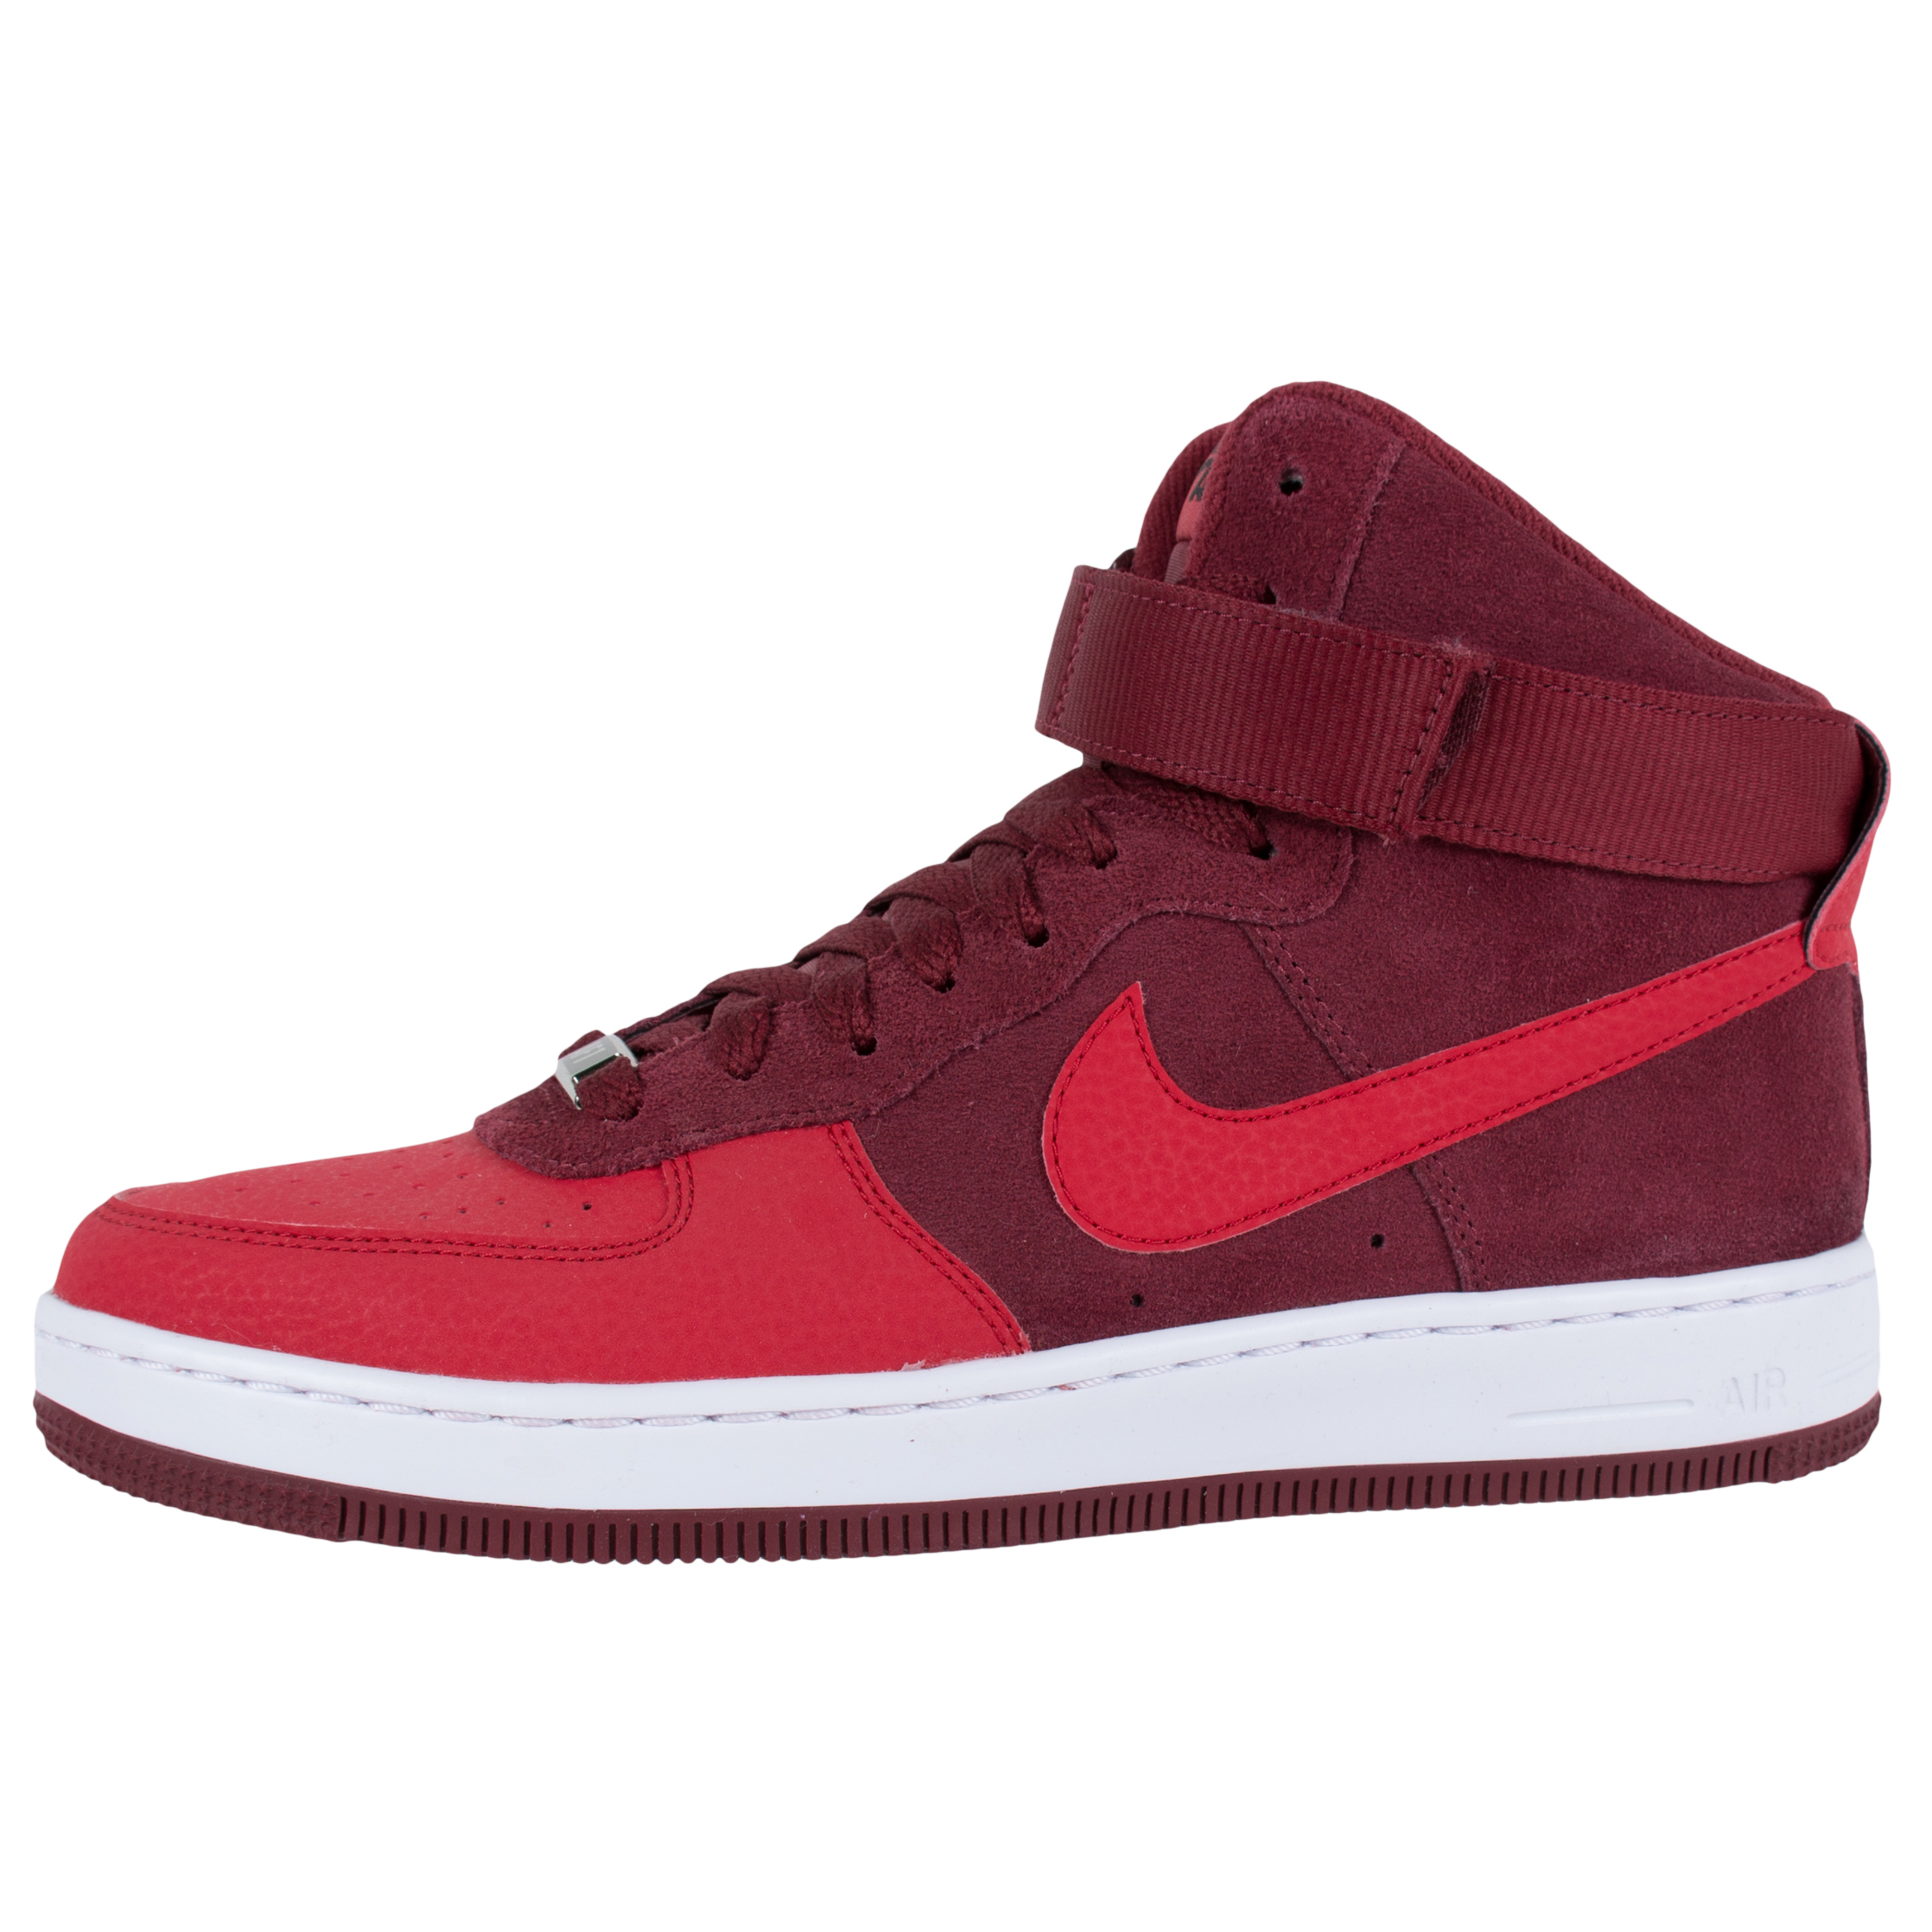 NIKE MID WOMENS AF1 ULTRA FORCE MID NIKE SNEAKERS GYM RED GYM RED 654851 601 e8b974